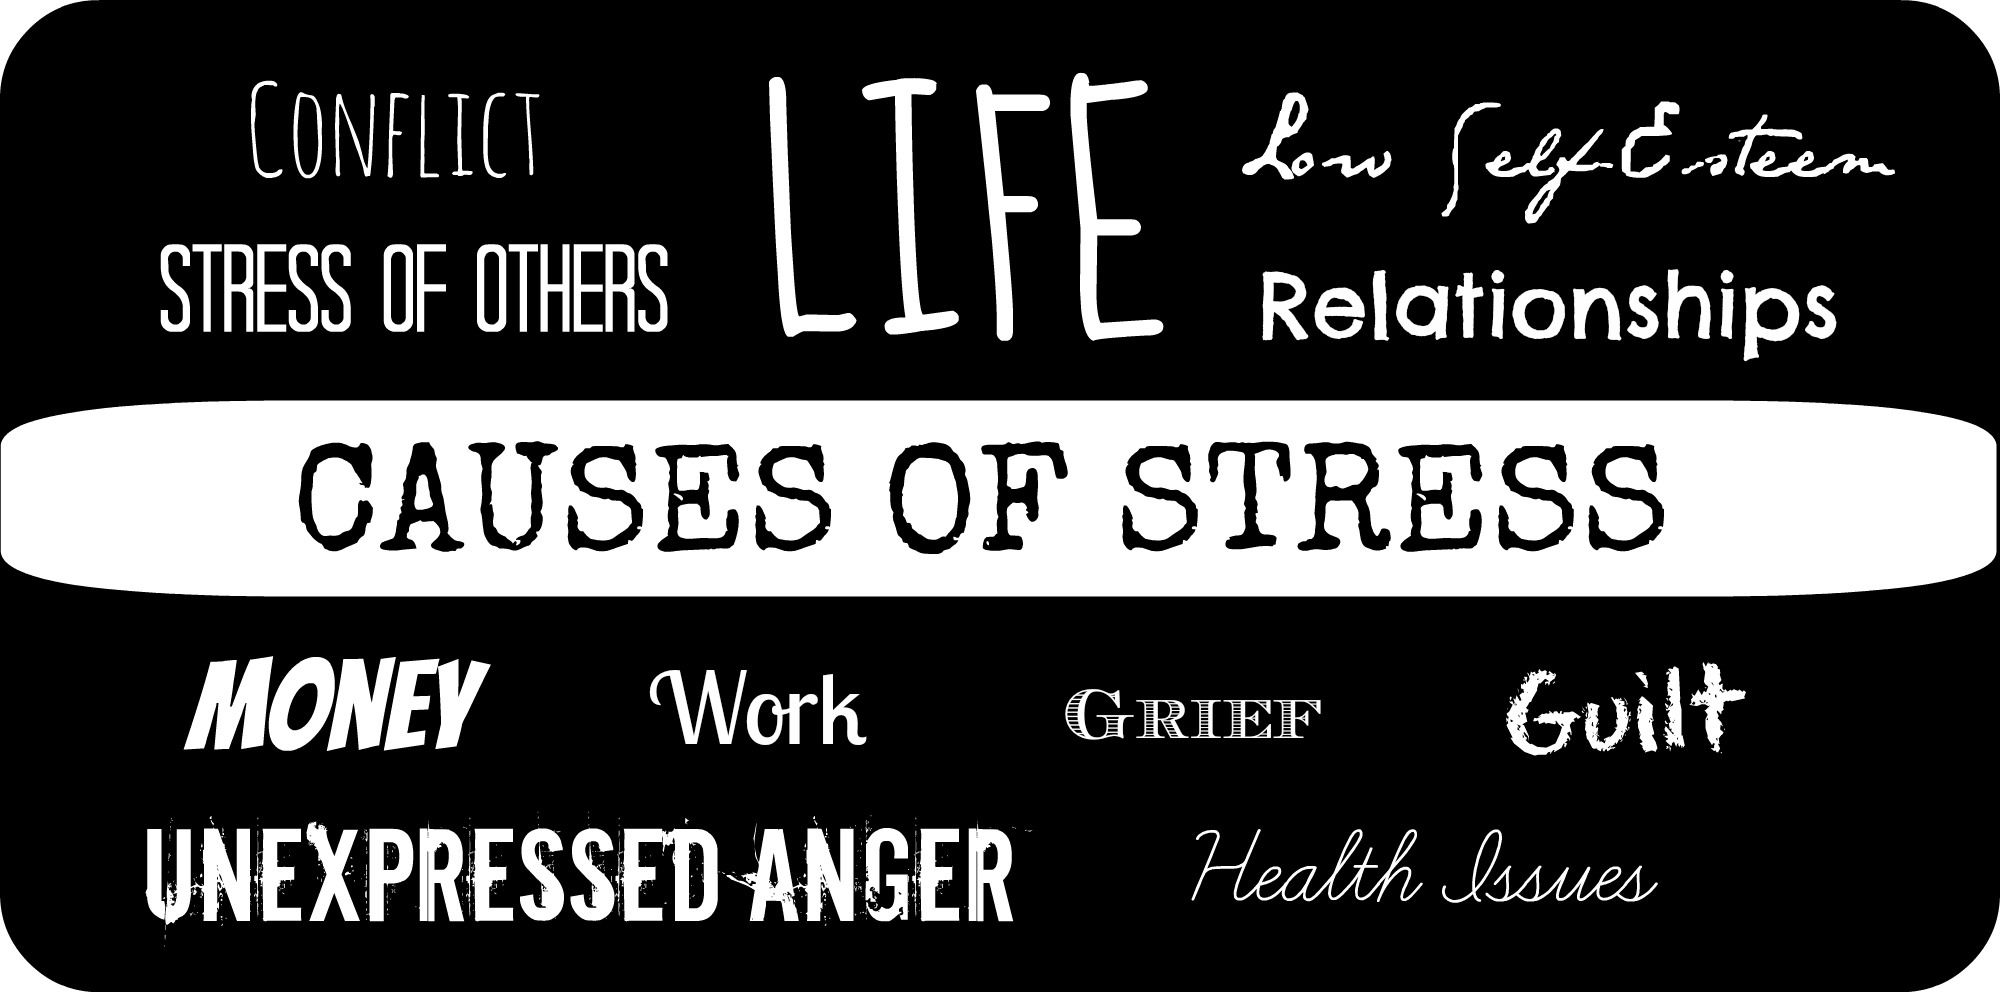 Causes-of-Stress.jpg